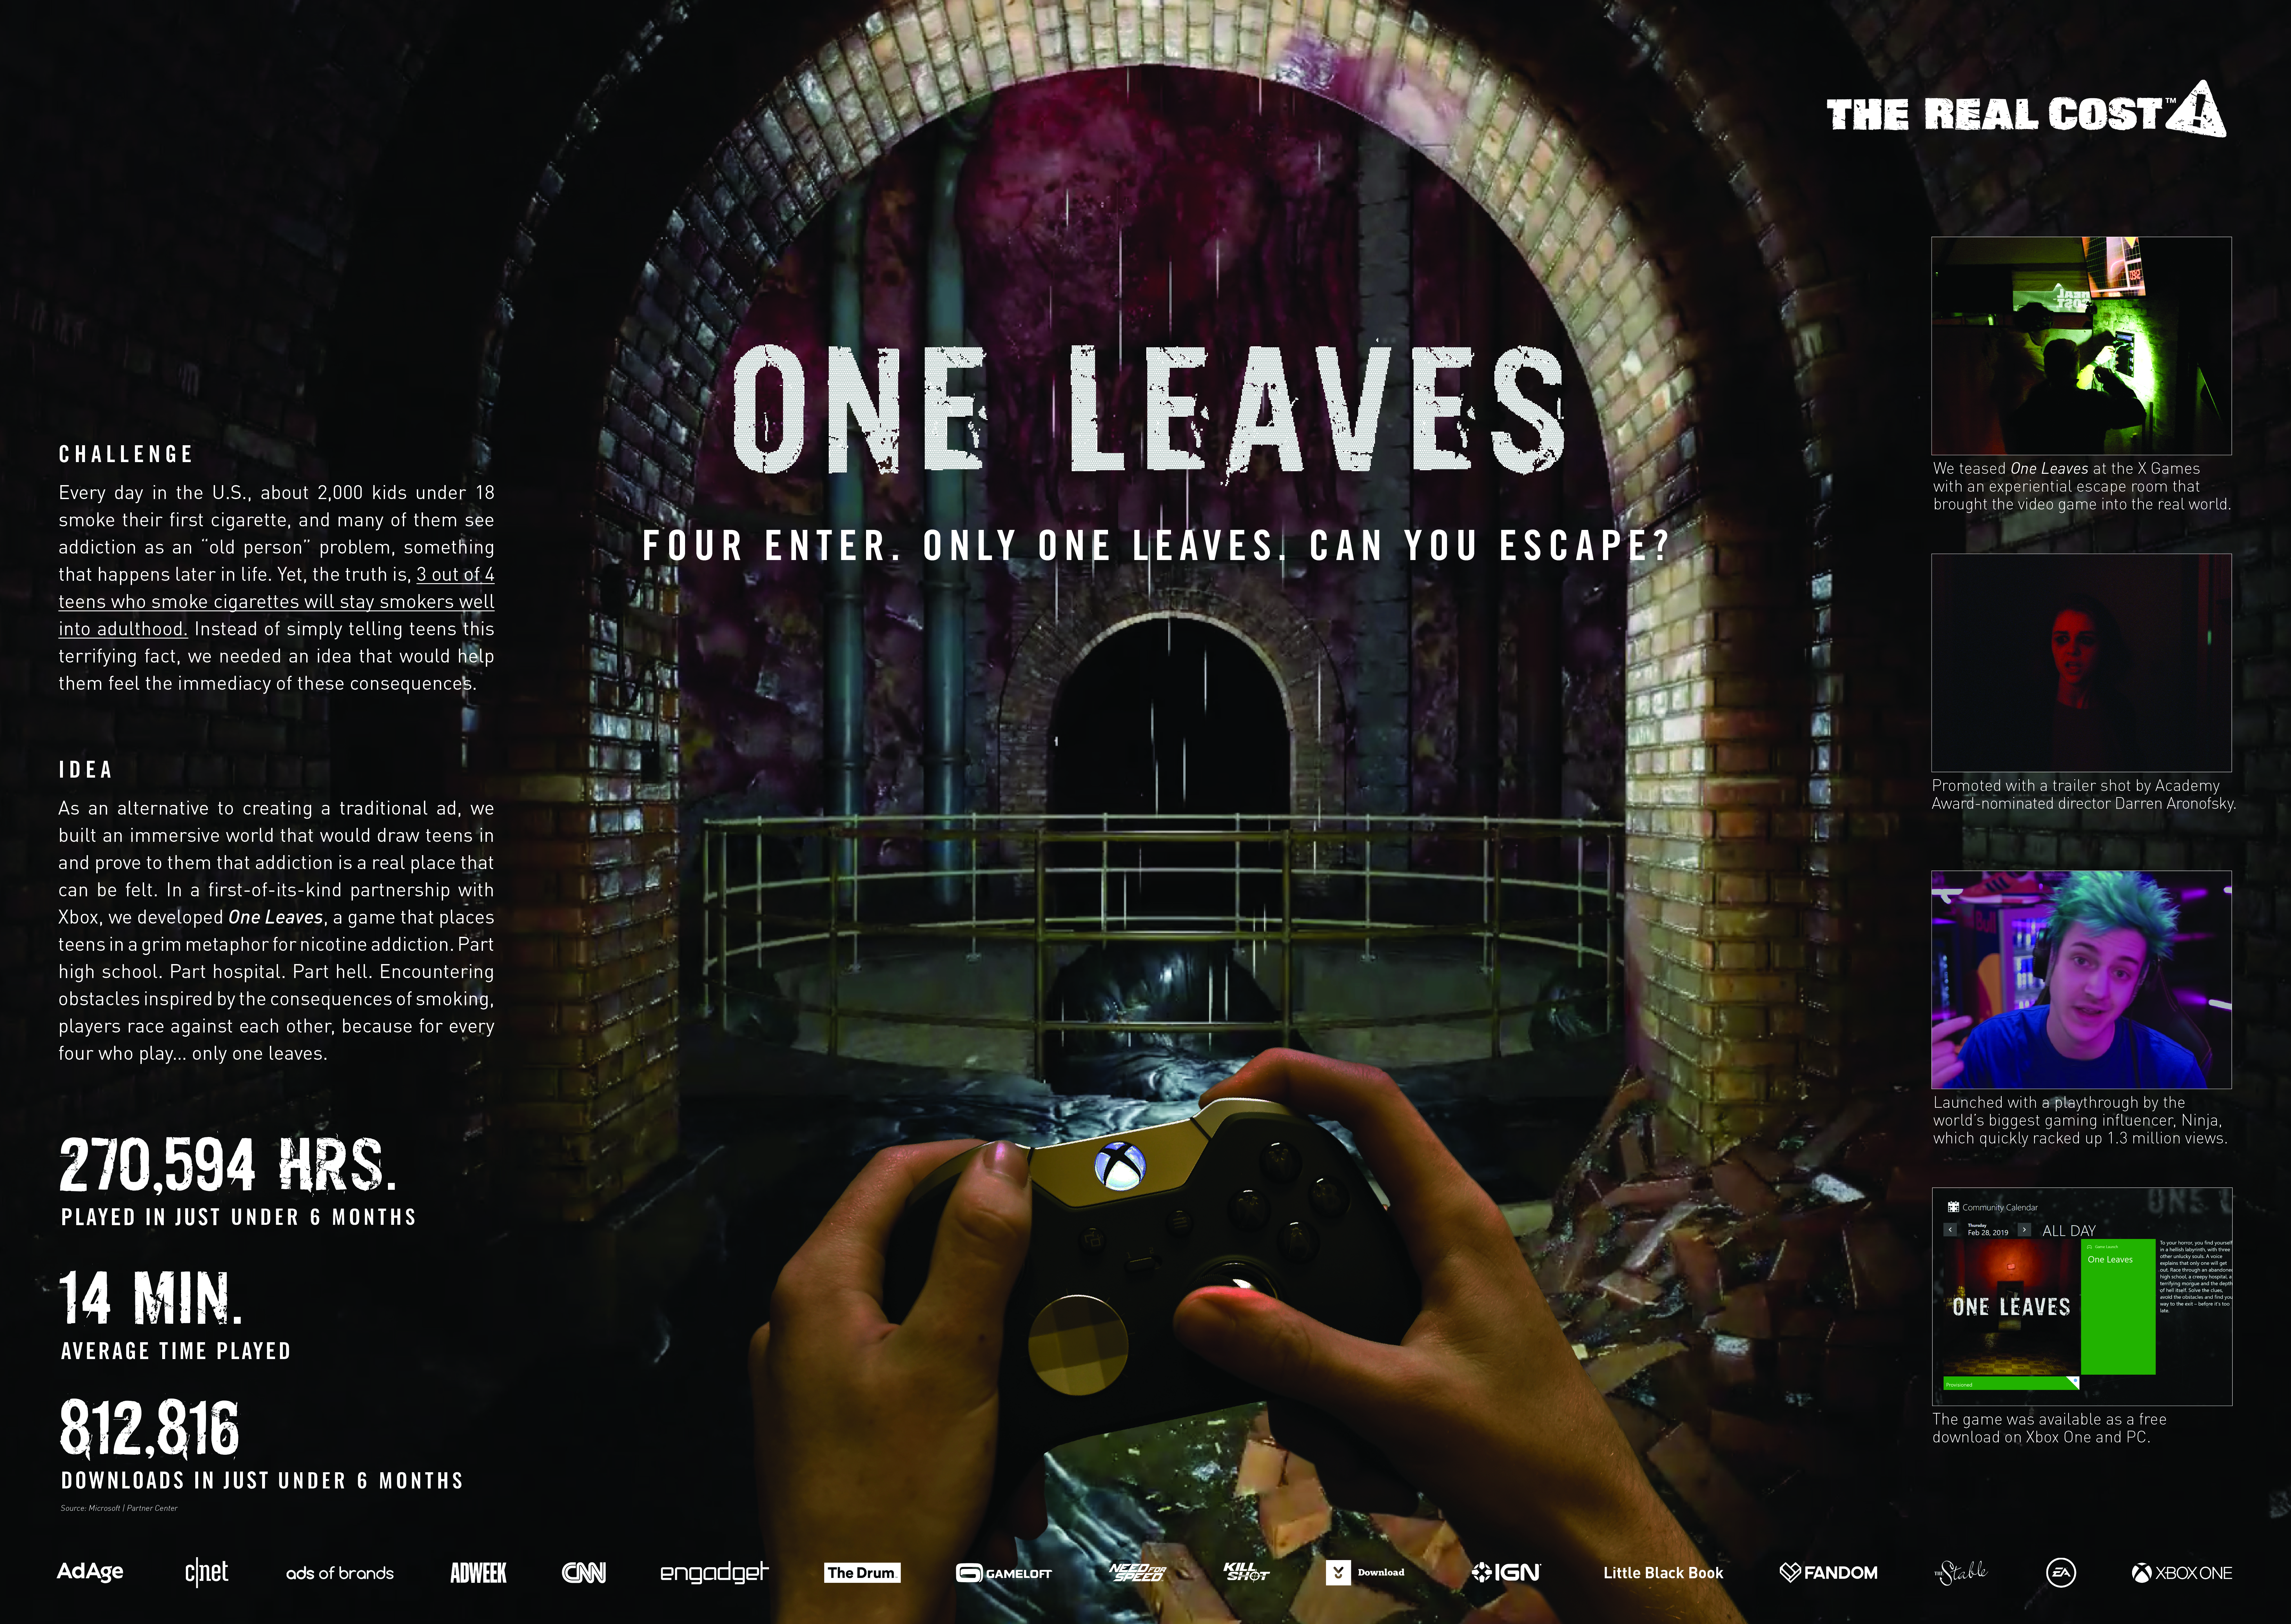 The Real Cost – One Leaves